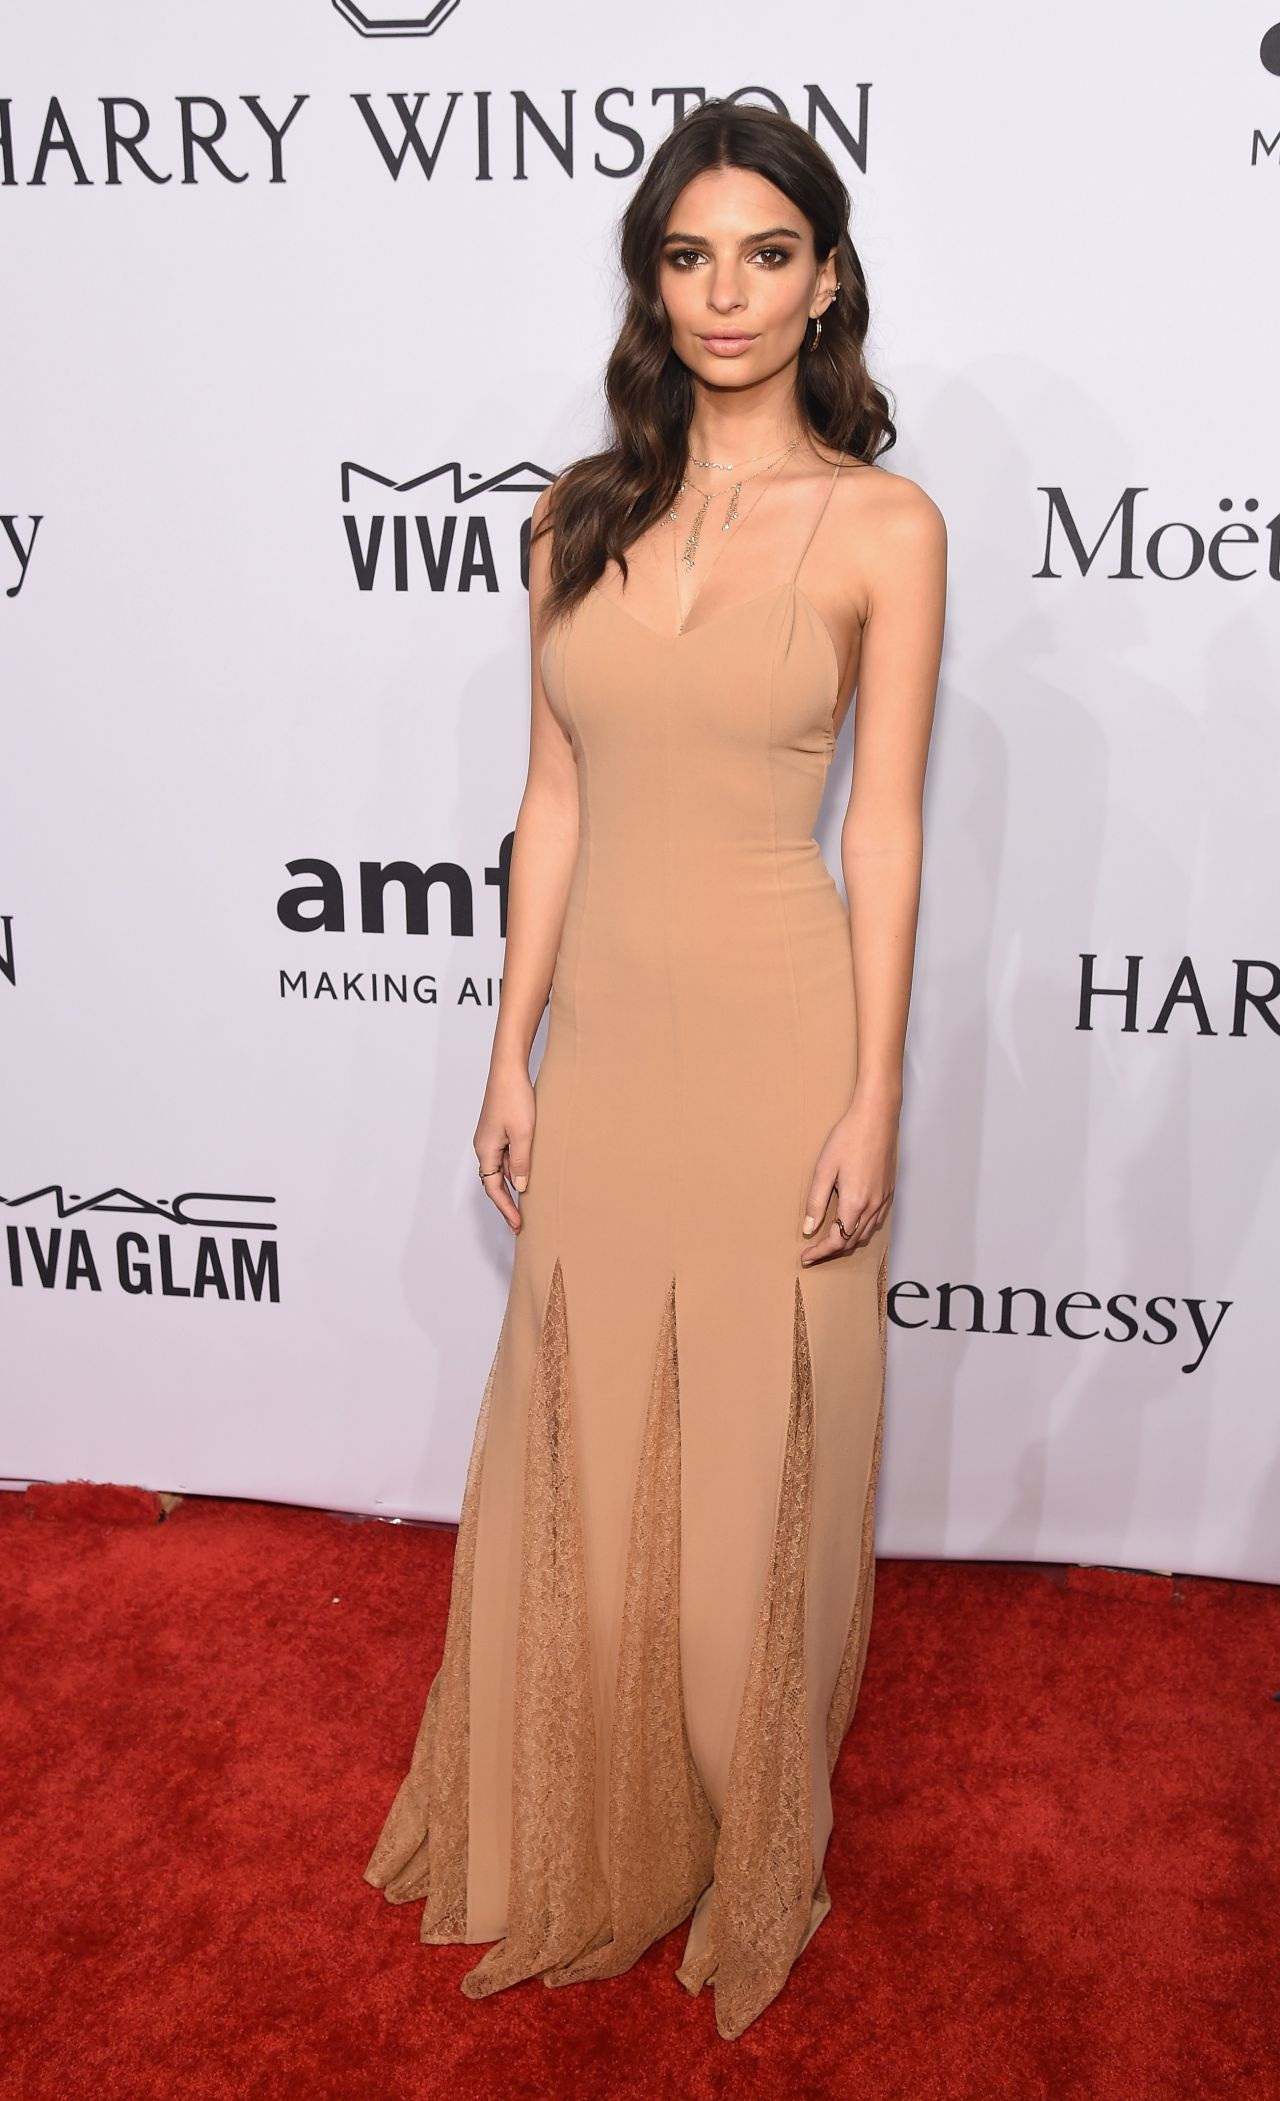 emily-ratajkowski-2016-amfar-new-york-gala-in-new-york-city-ny-2